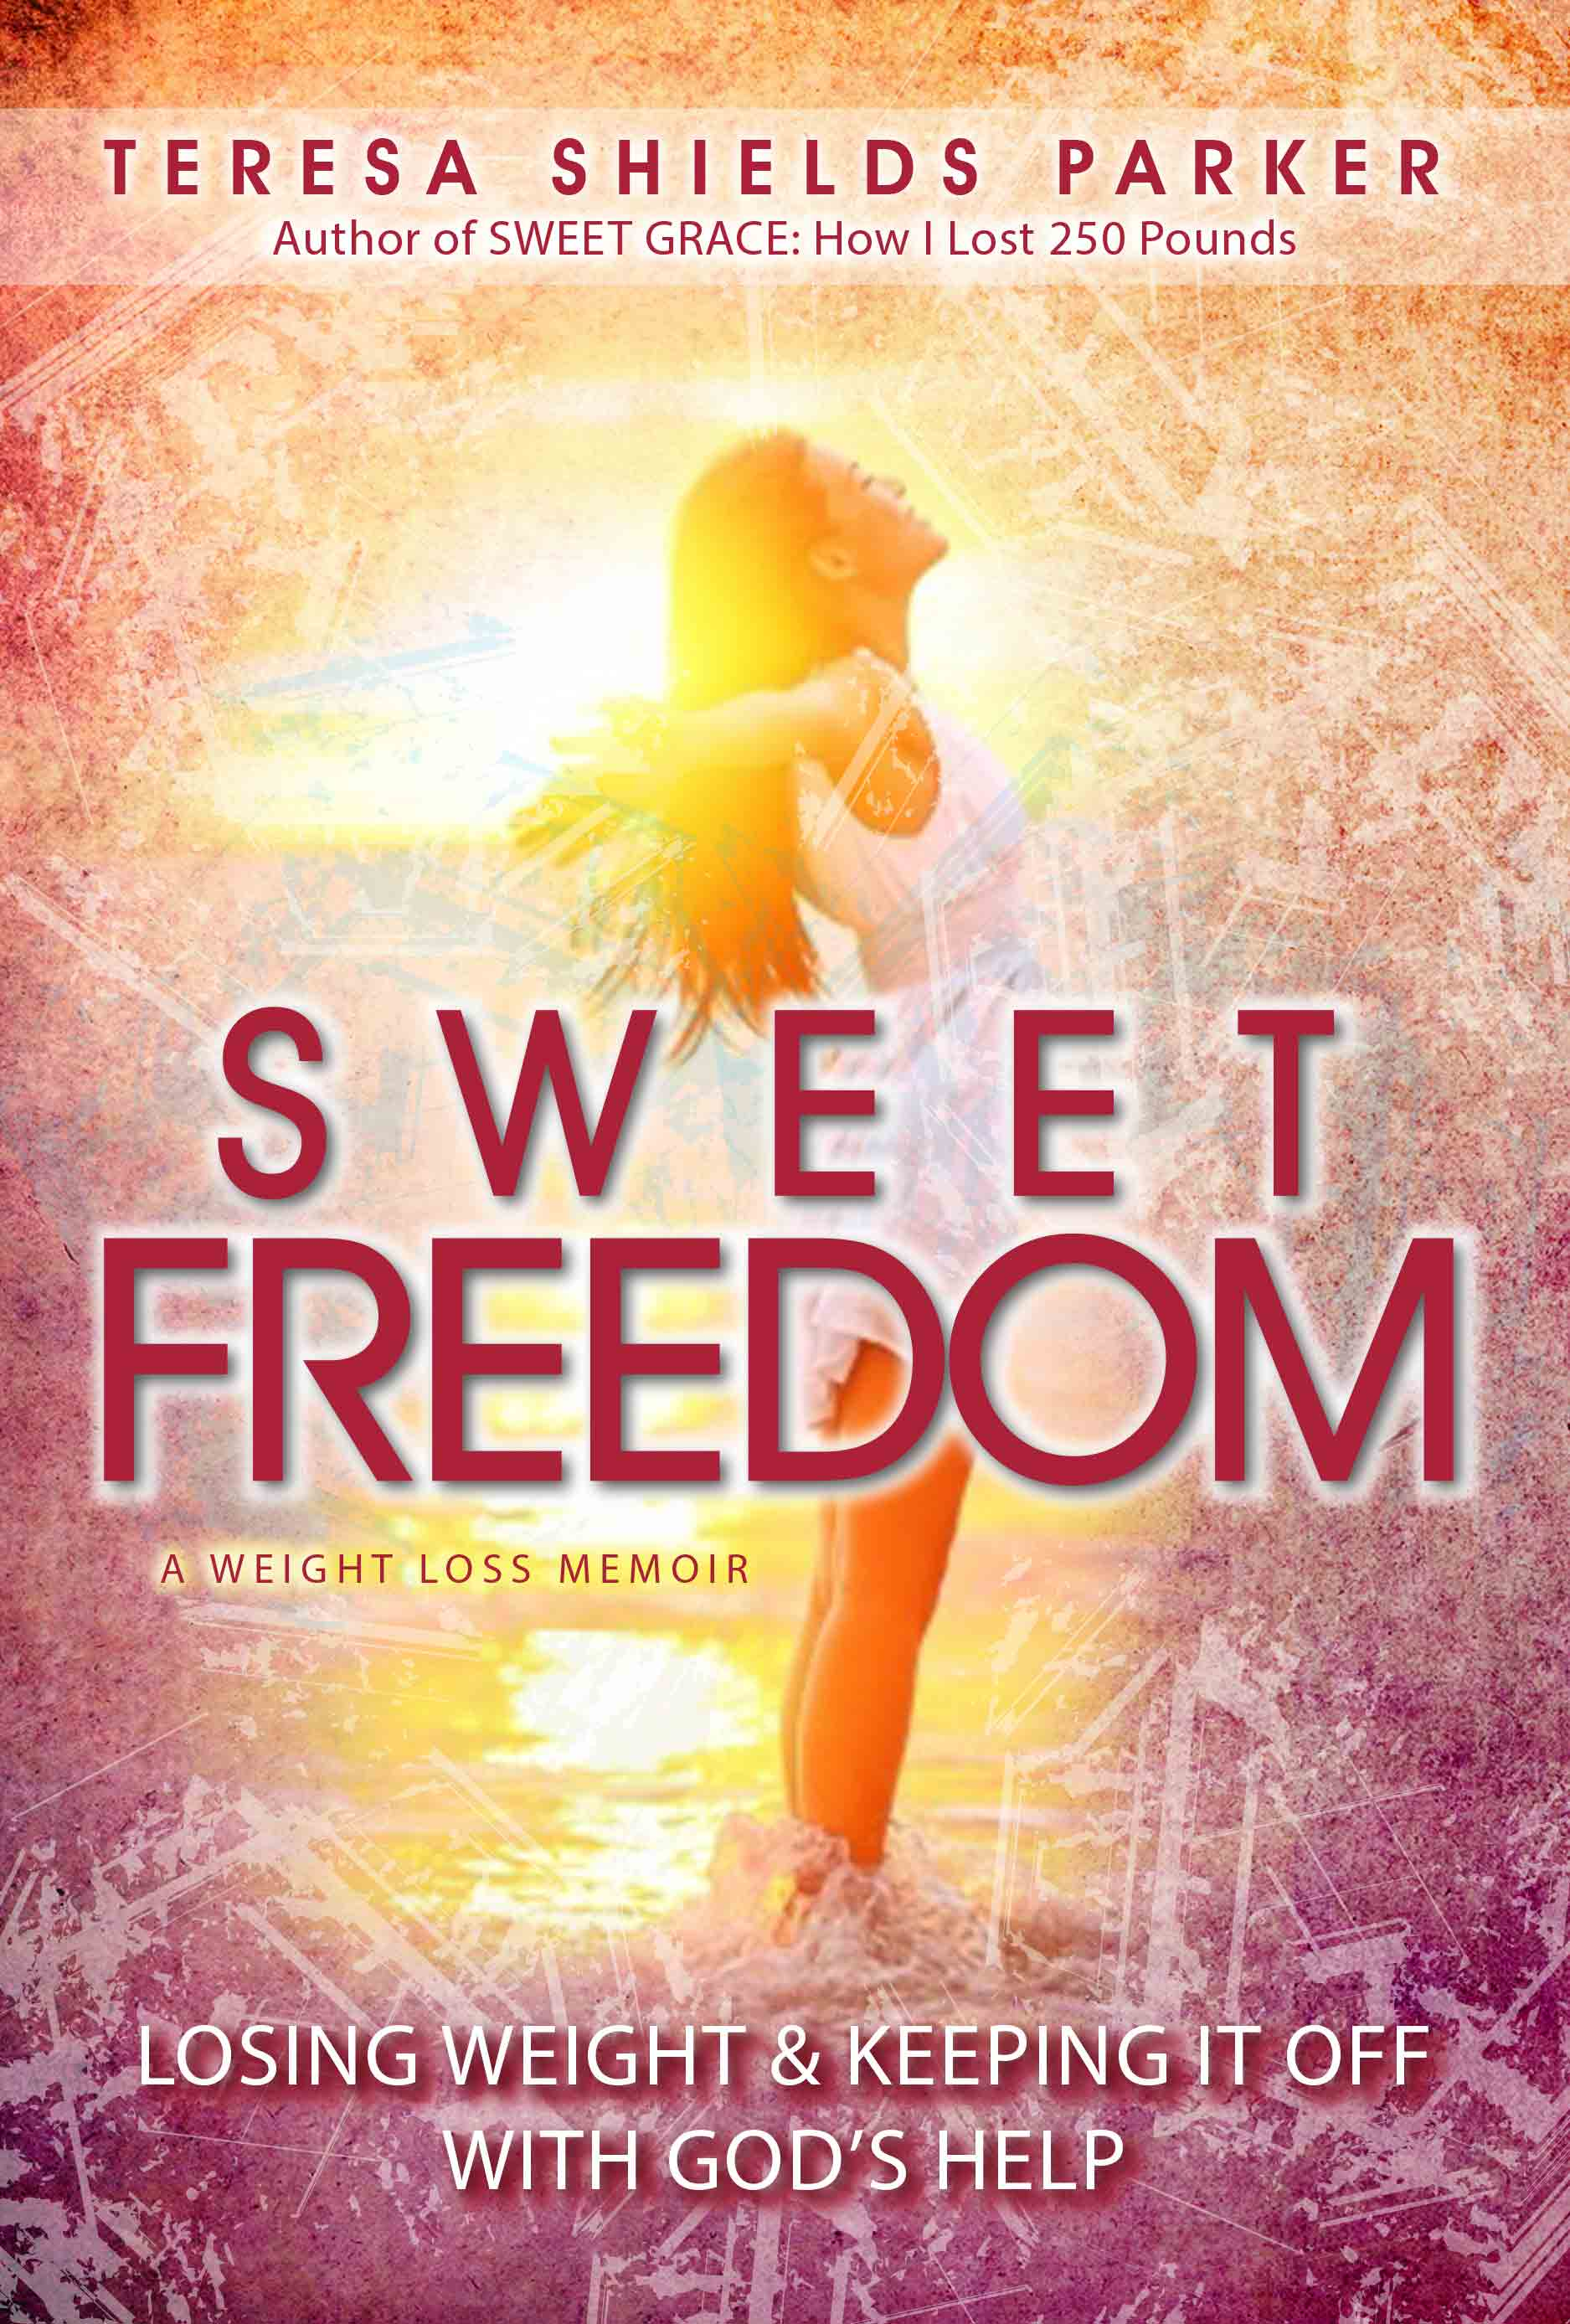 Sweet-Freedom-Front-Concept-low